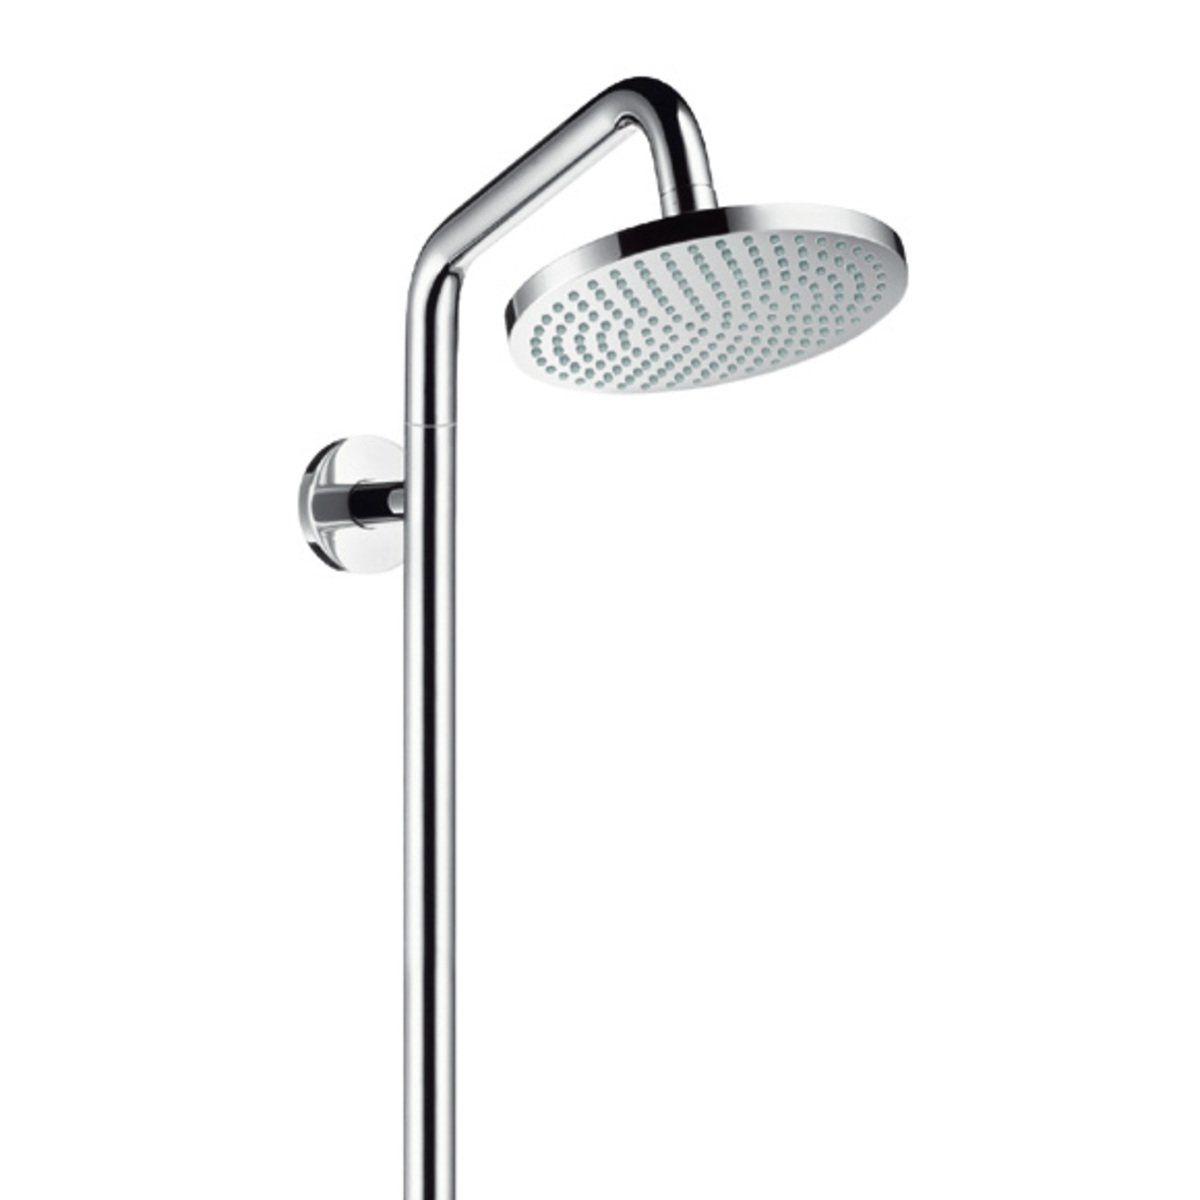 Hansgrohe croma 160 showerpipe chroom 27135000 - Colonne de douche showerpipe croma 160 ...